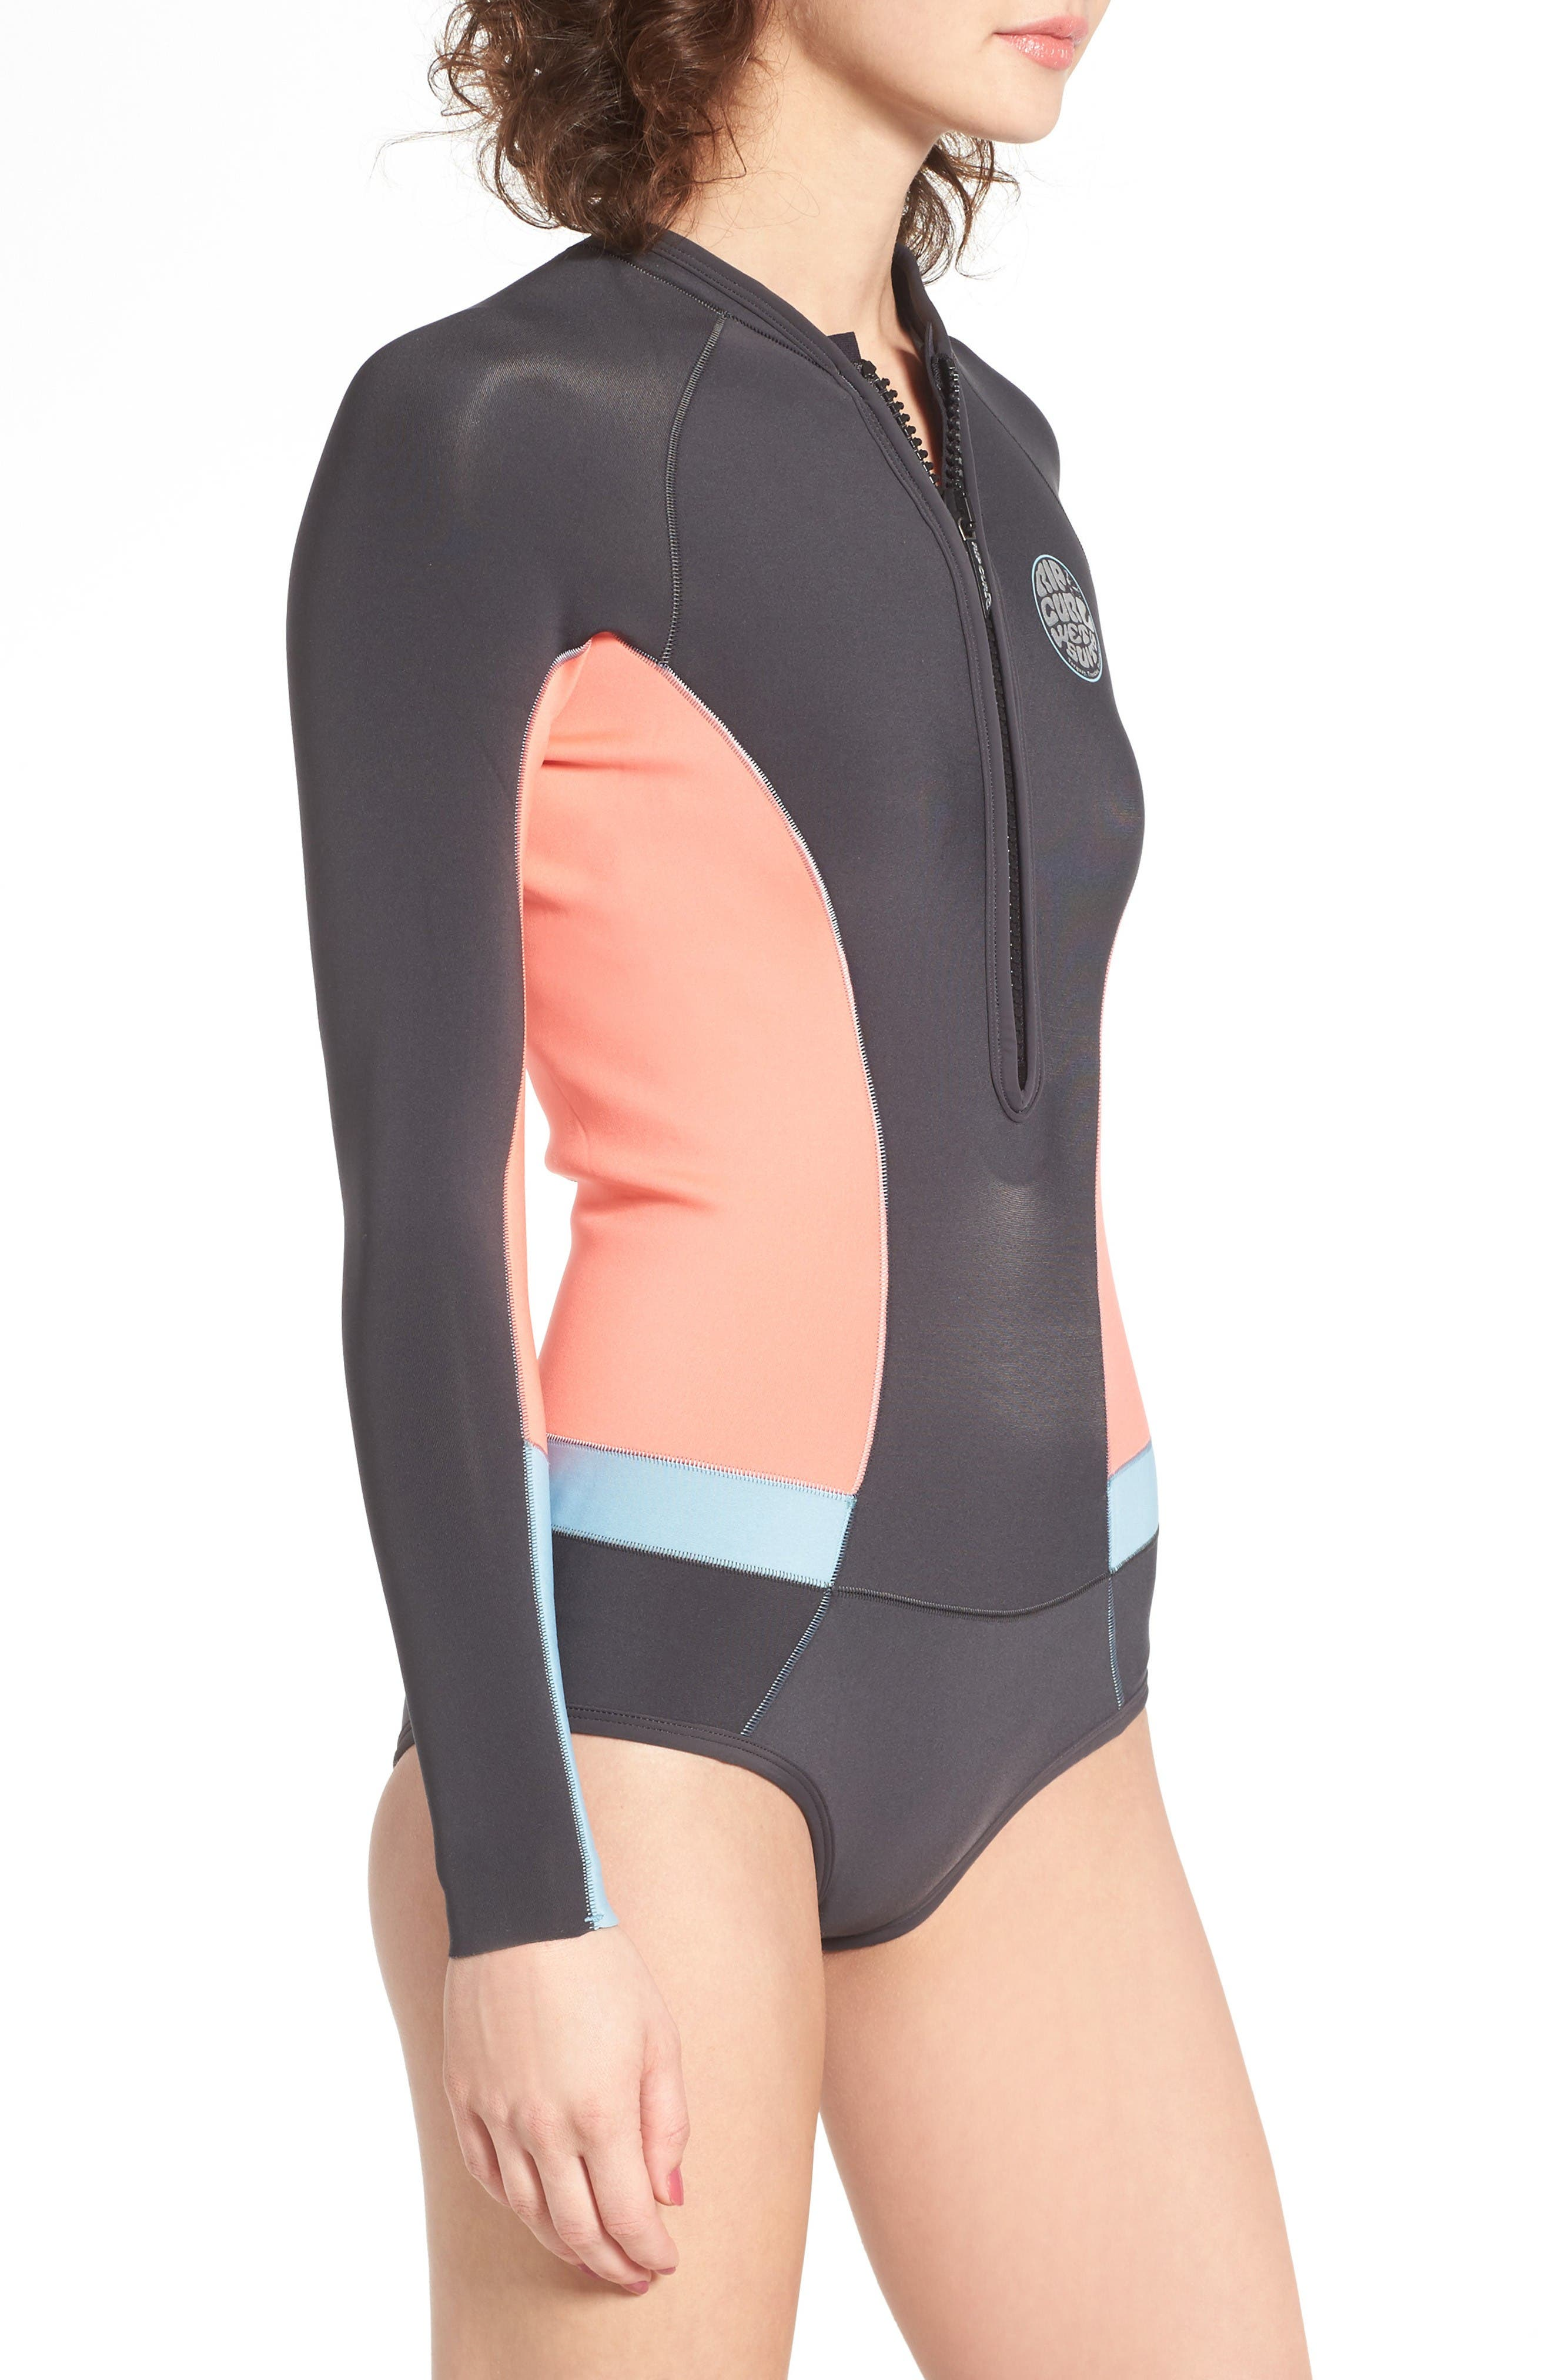 G-Bomb Long Sleeve Wetsuit,                             Alternate thumbnail 3, color,                             Coral